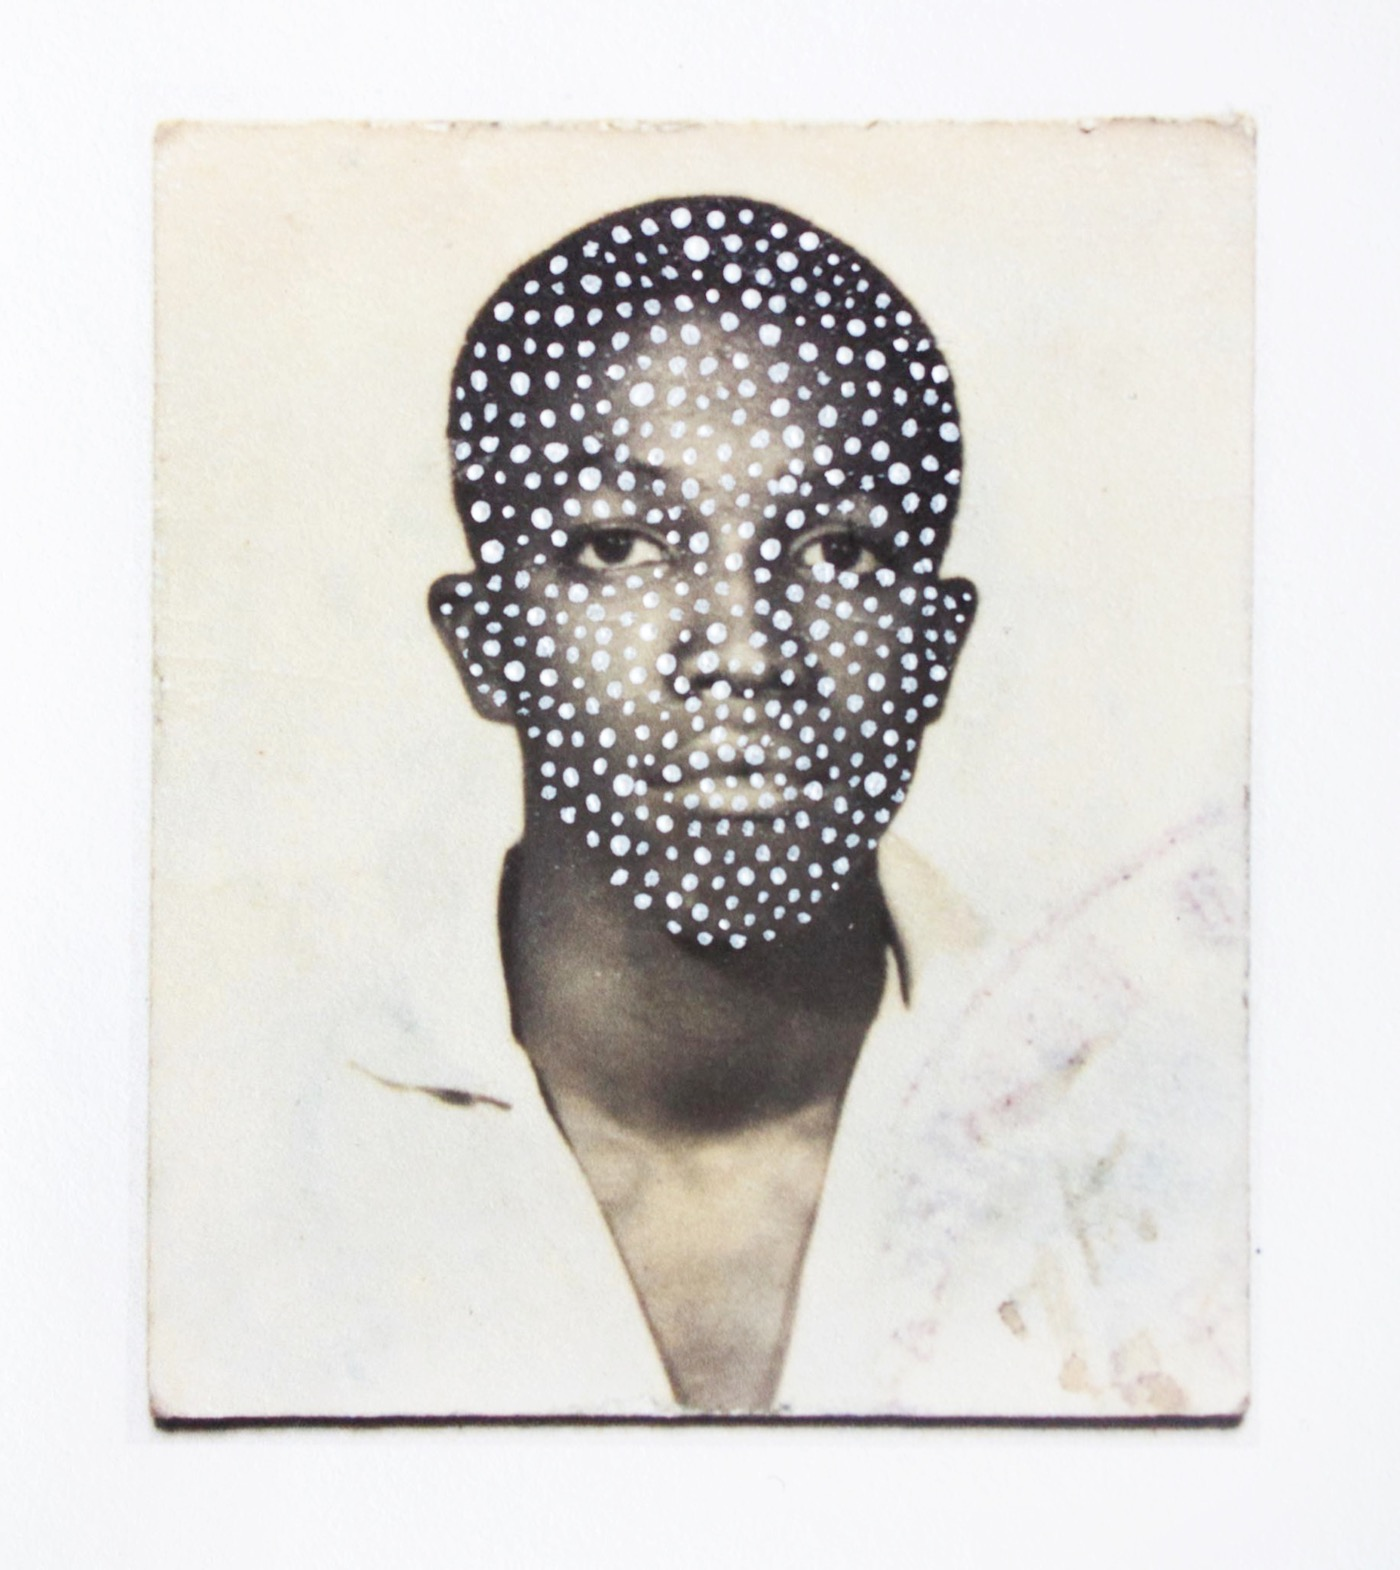 Keisha Scarville Untitled, from the Passport series, 2012 – 2016 Mixed media 2 1/4 x 2 1/4 in. Courtesy of the Artist